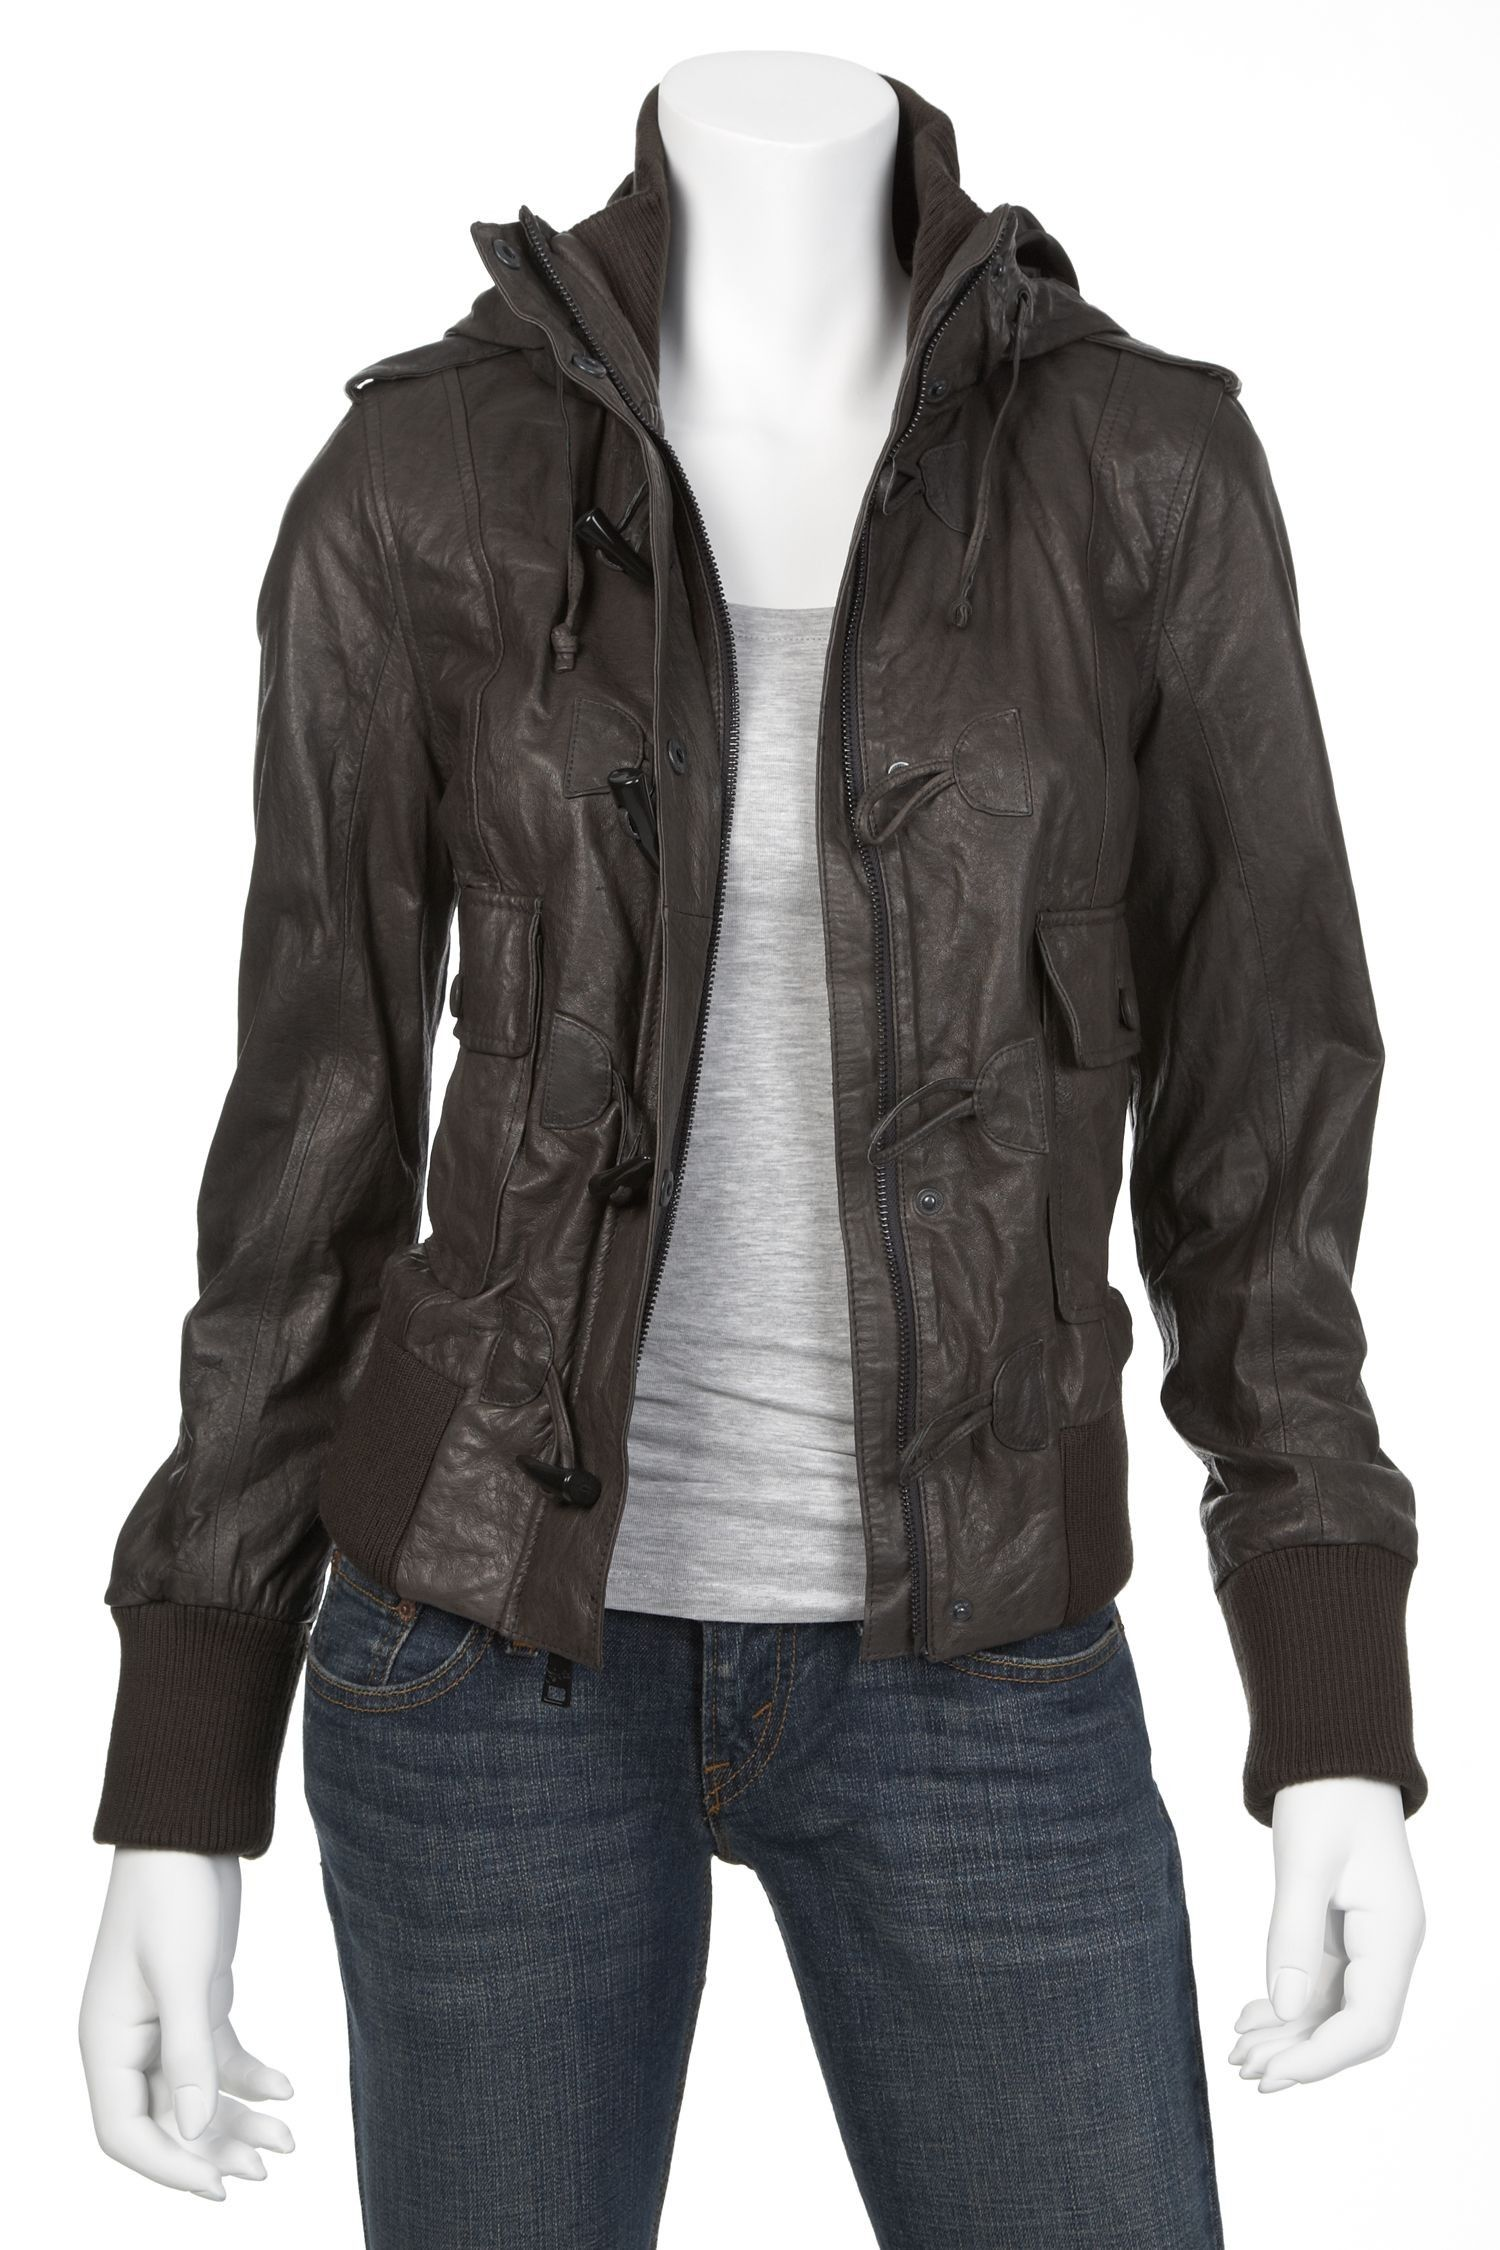 Buy low price, high quality leather jackets women with worldwide shipping on jwl-network.ga